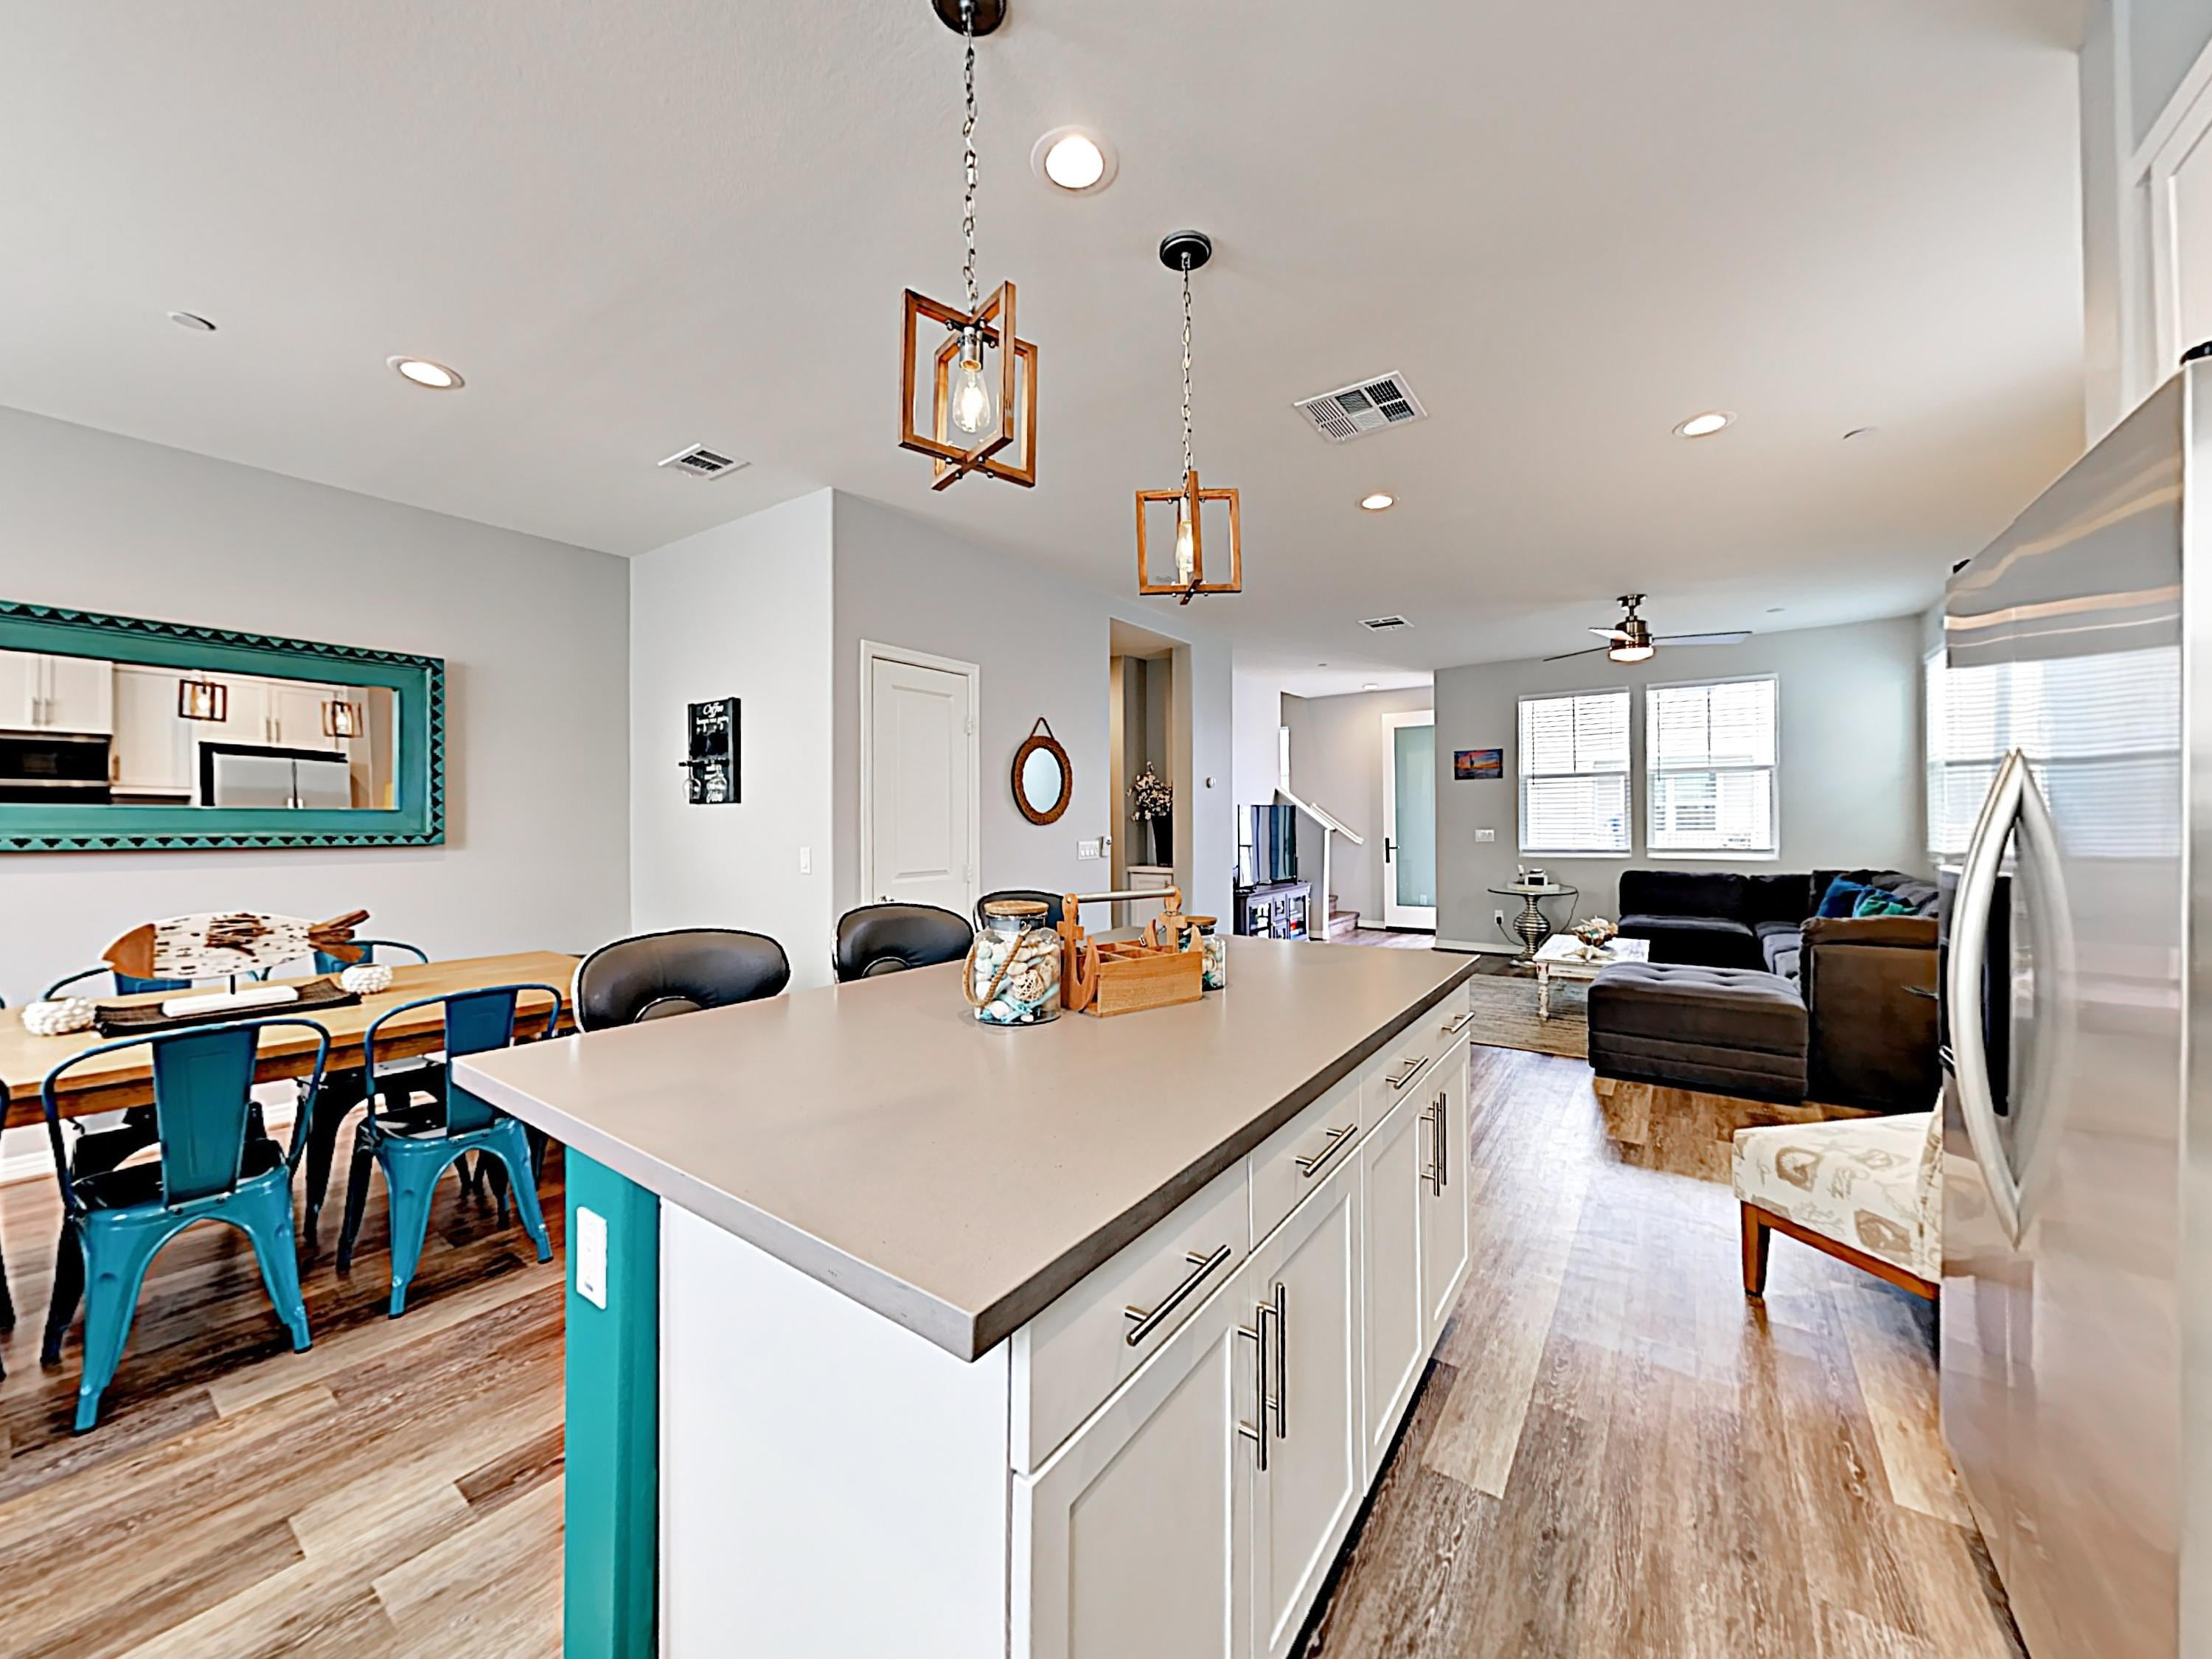 Welcome to Hampshire at Bayside! Welcome to Imperial Beach! This townhome is professionally managed by TurnKey Vacation Rentals.